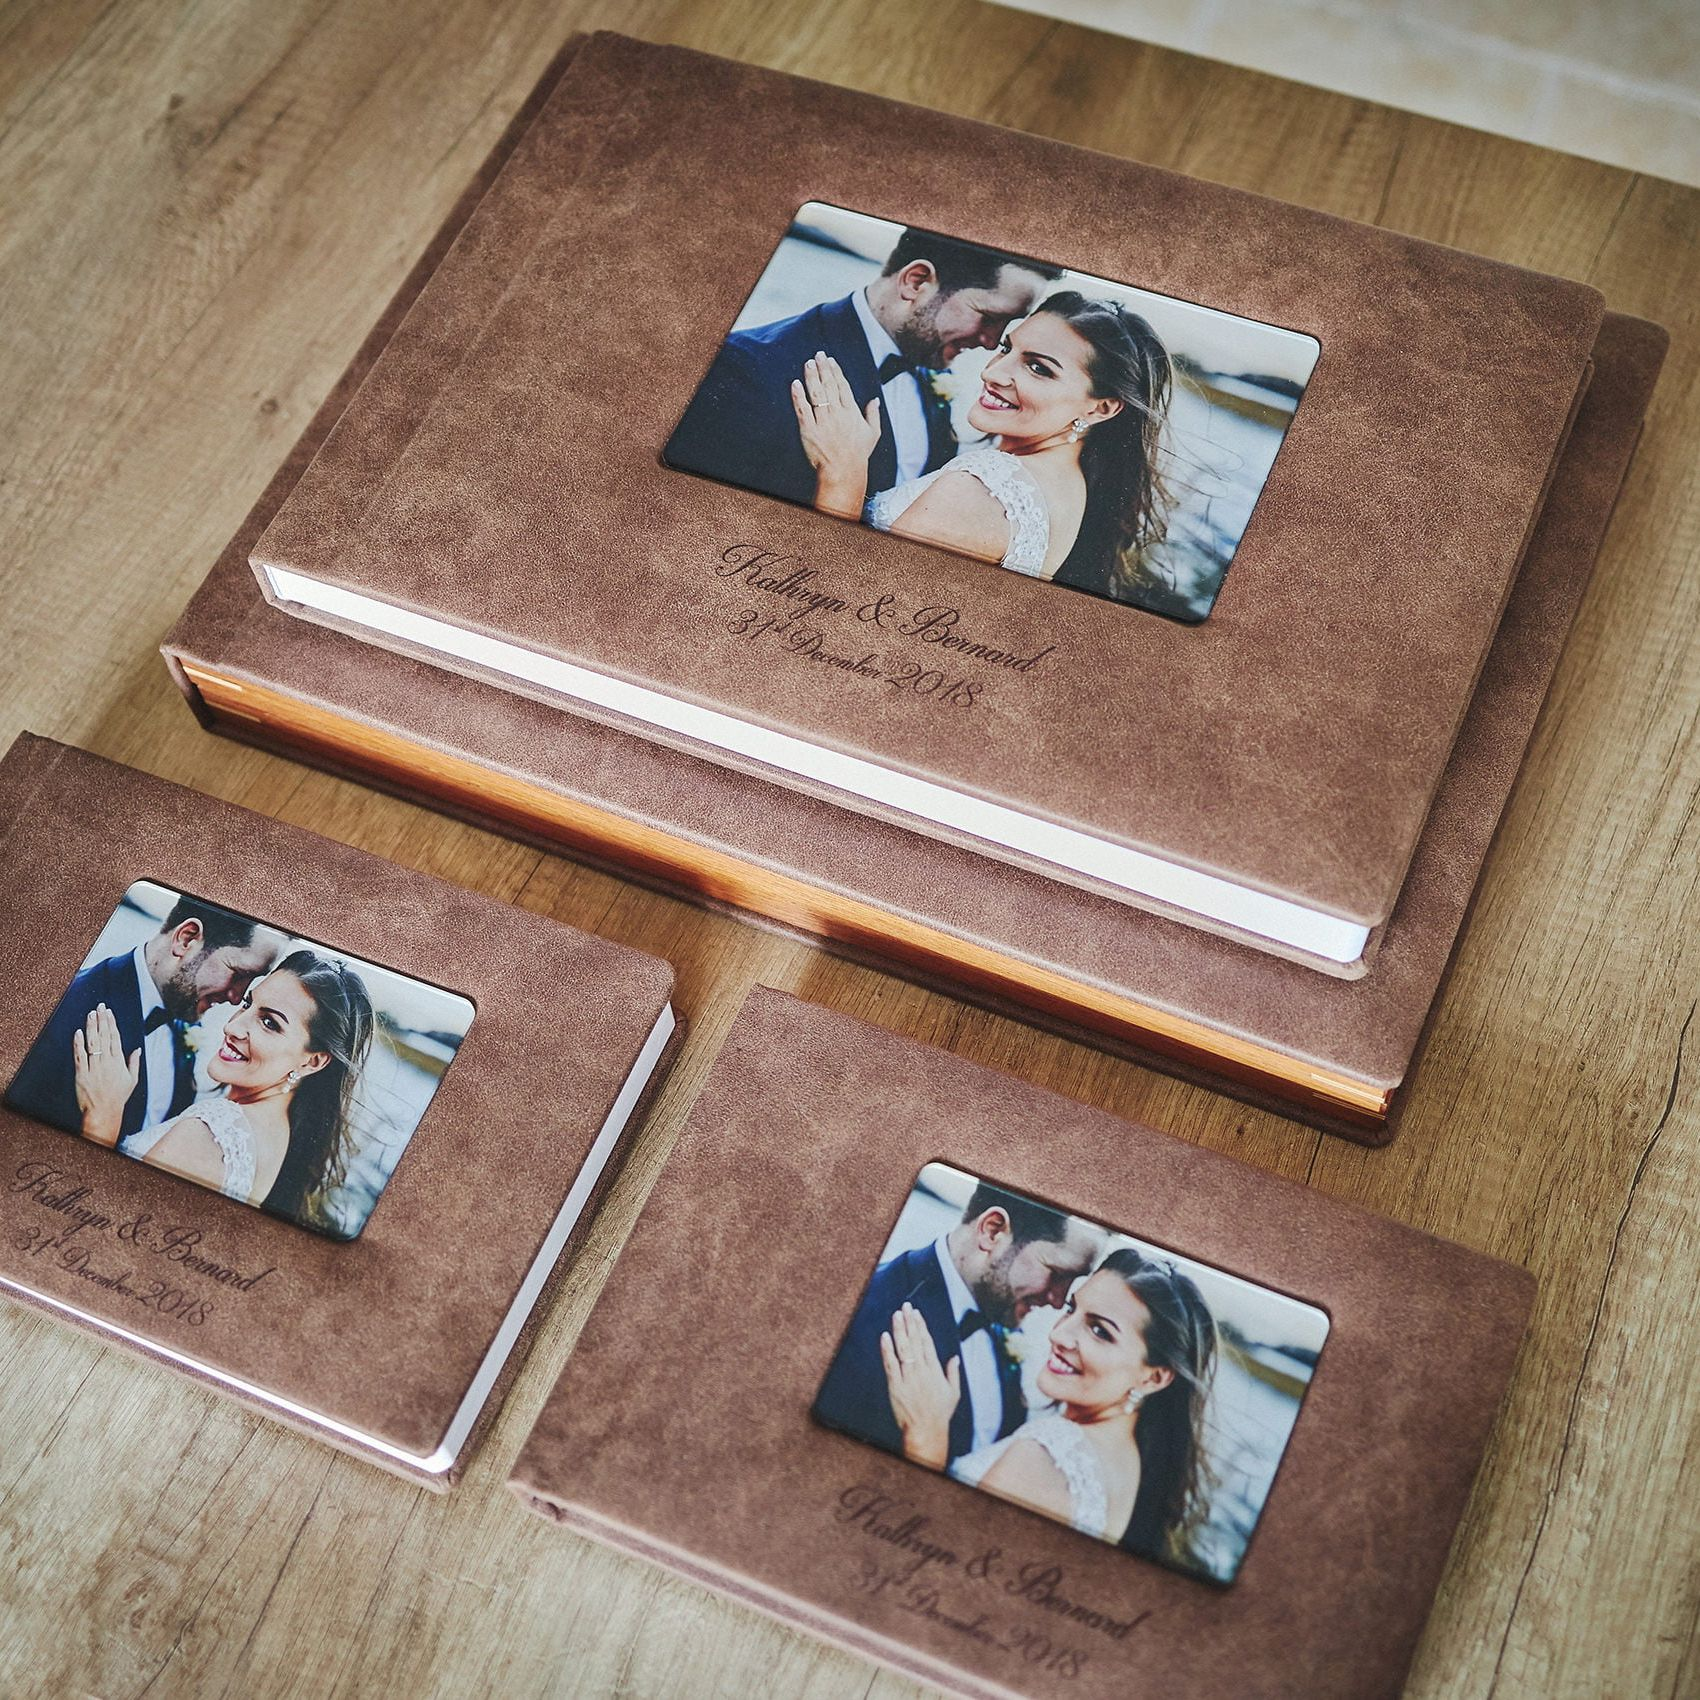 1 Standard and 2 Parents wedding albums (60 pages-150 photos) 1